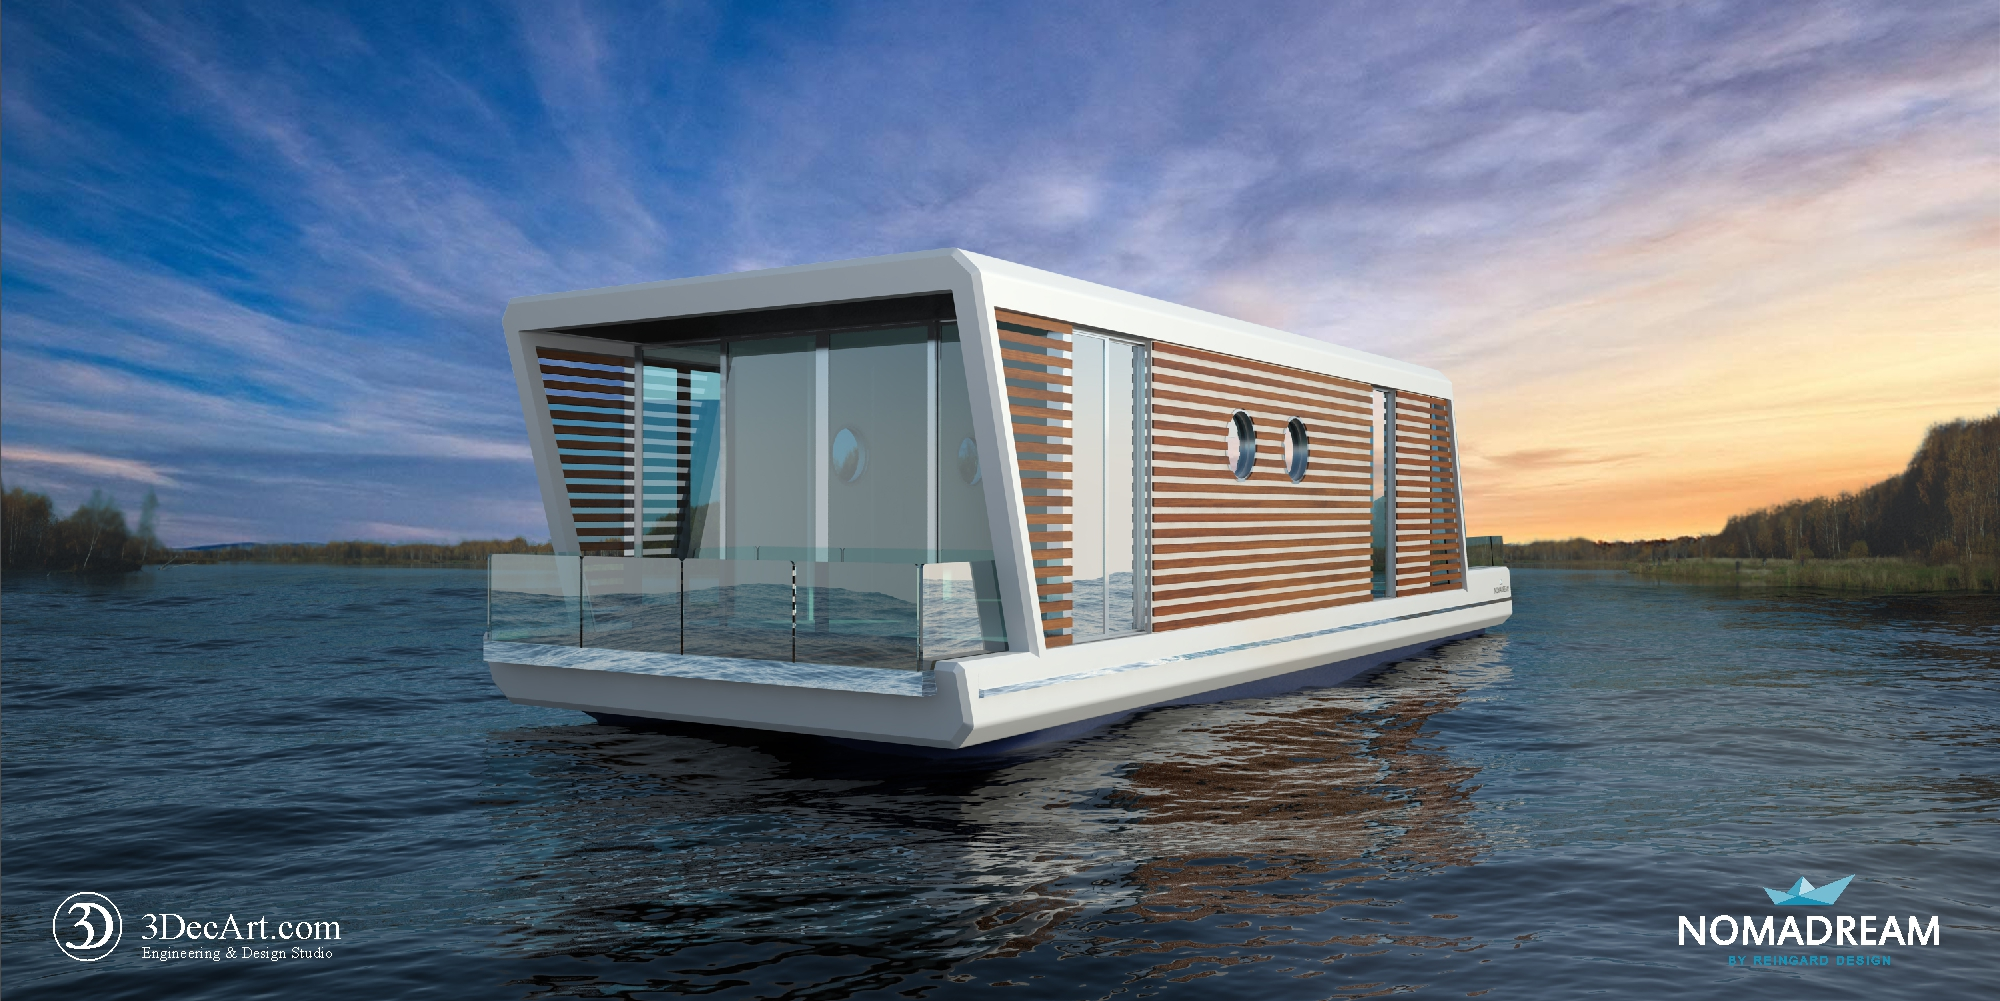 Project House On The Water Nomadream